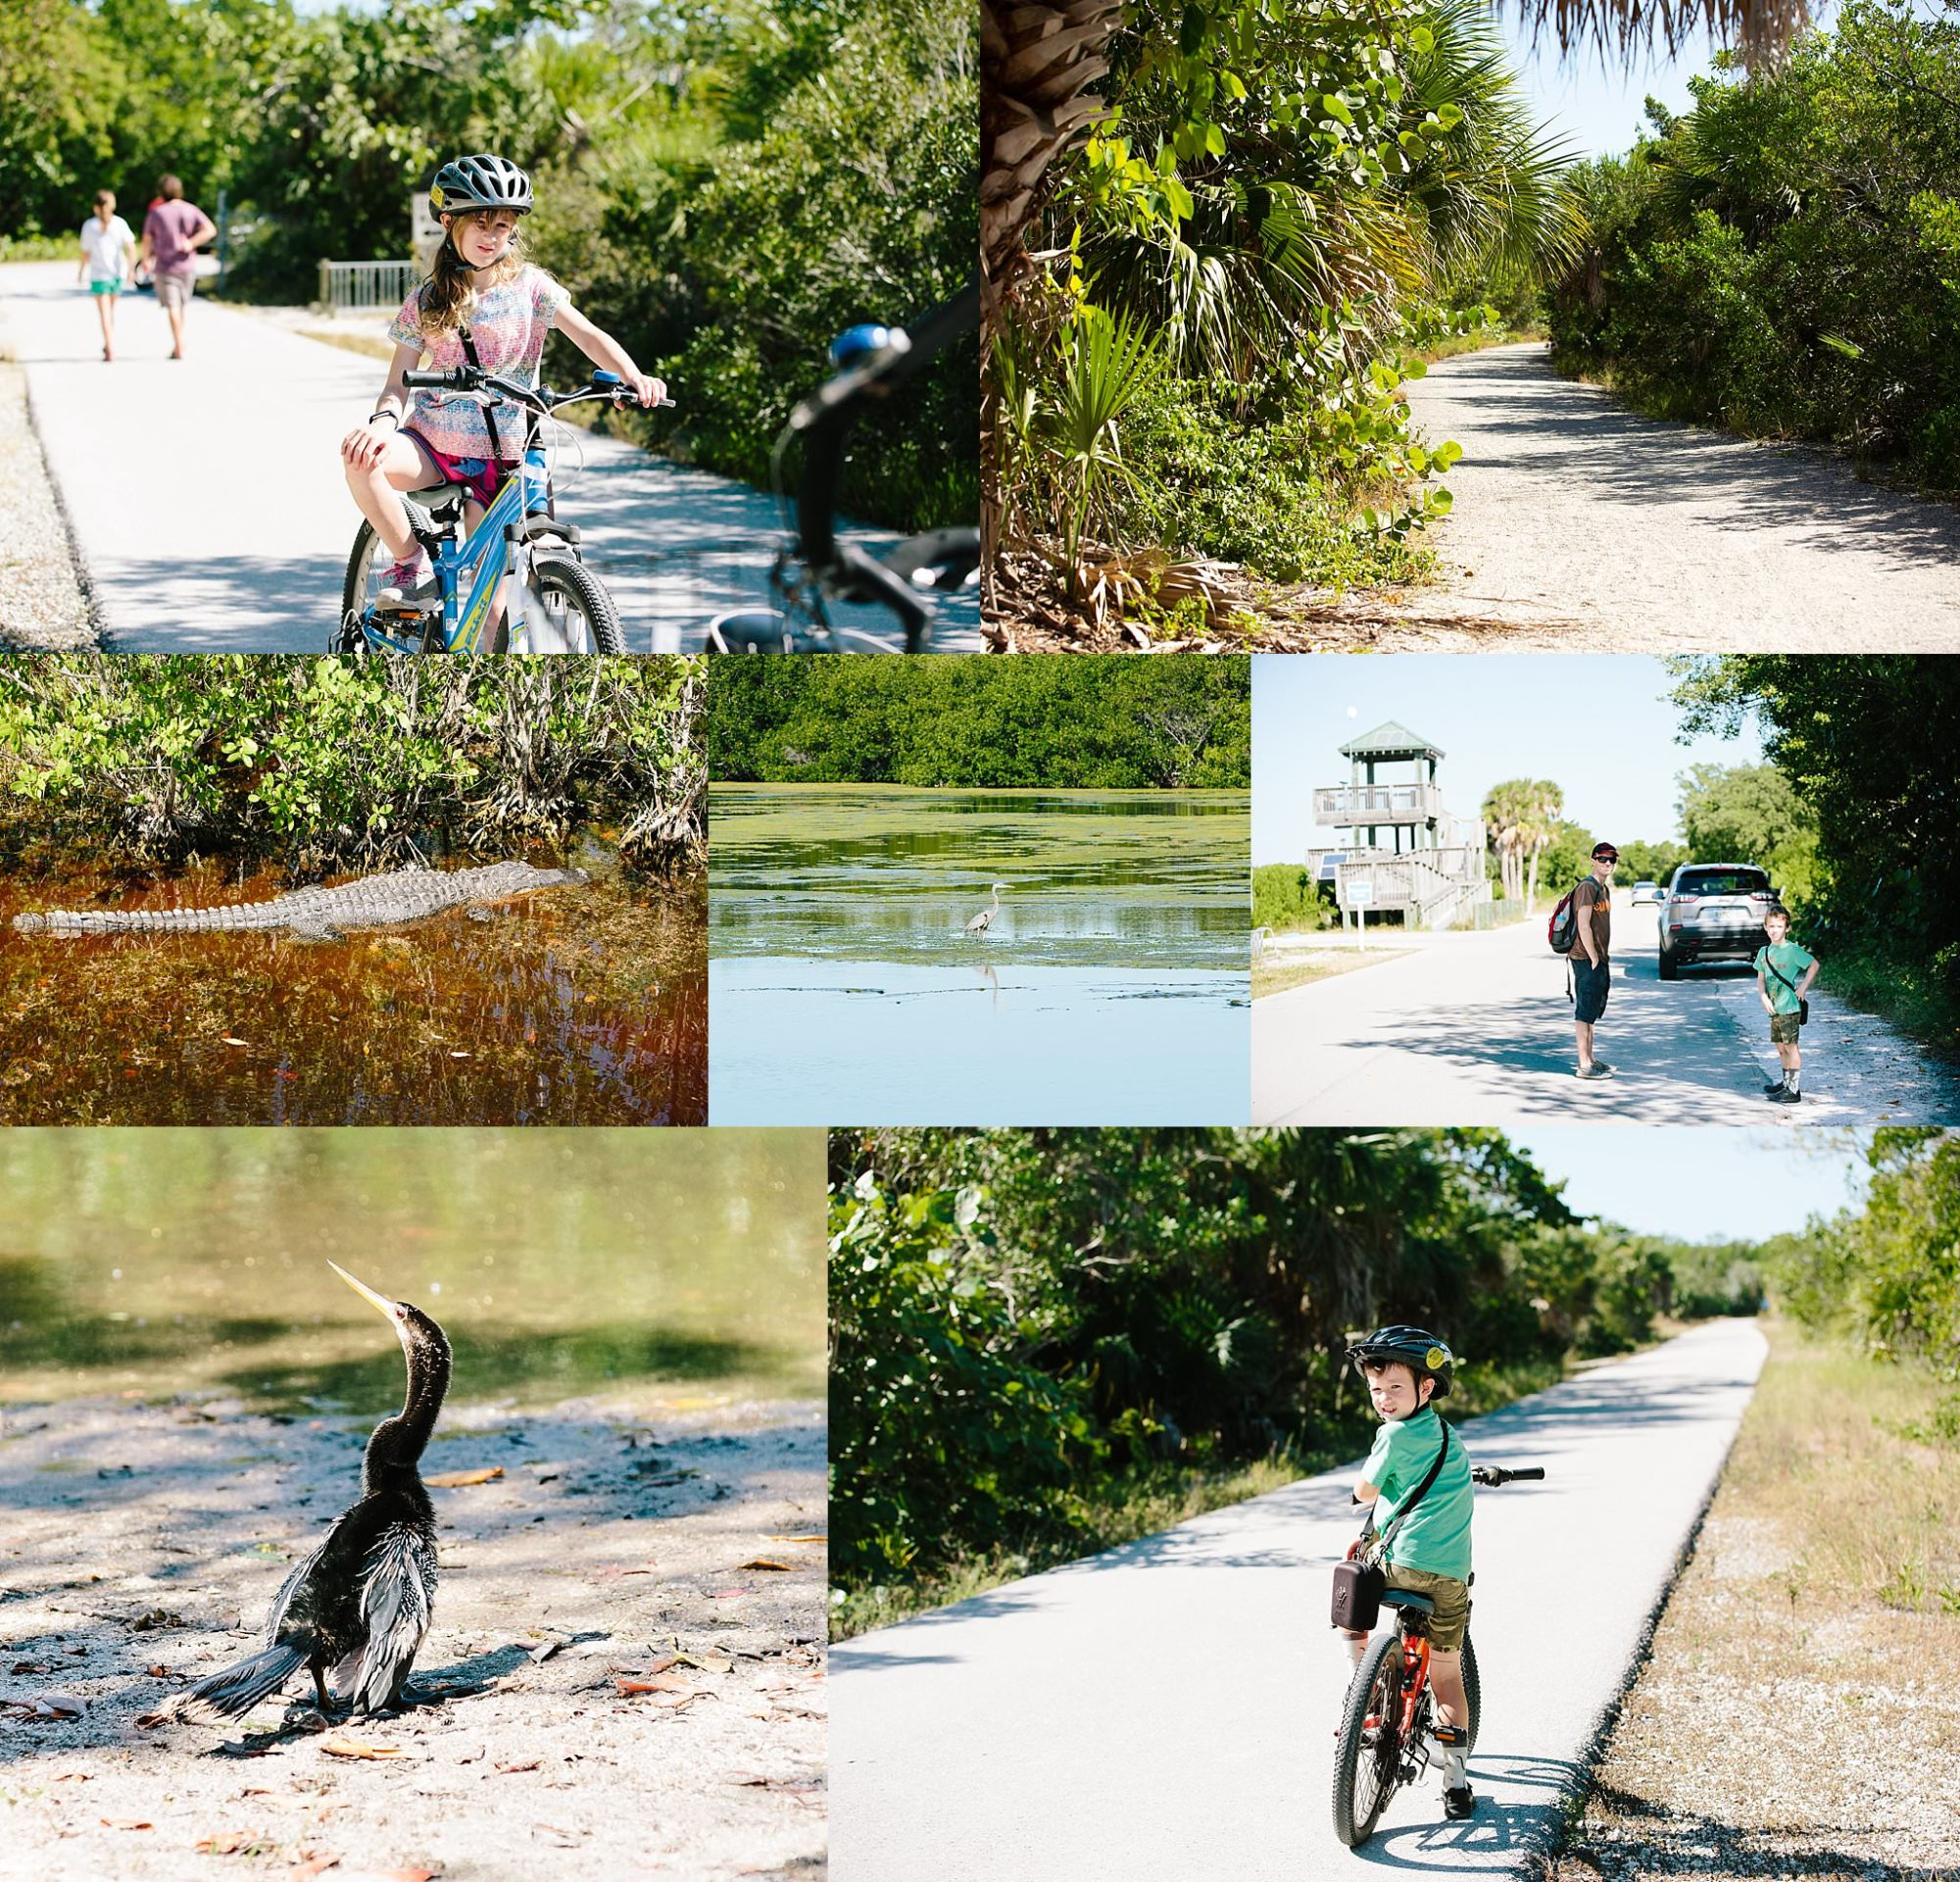 Ding Darling Wildlife Refuge Sanibel Island Florida